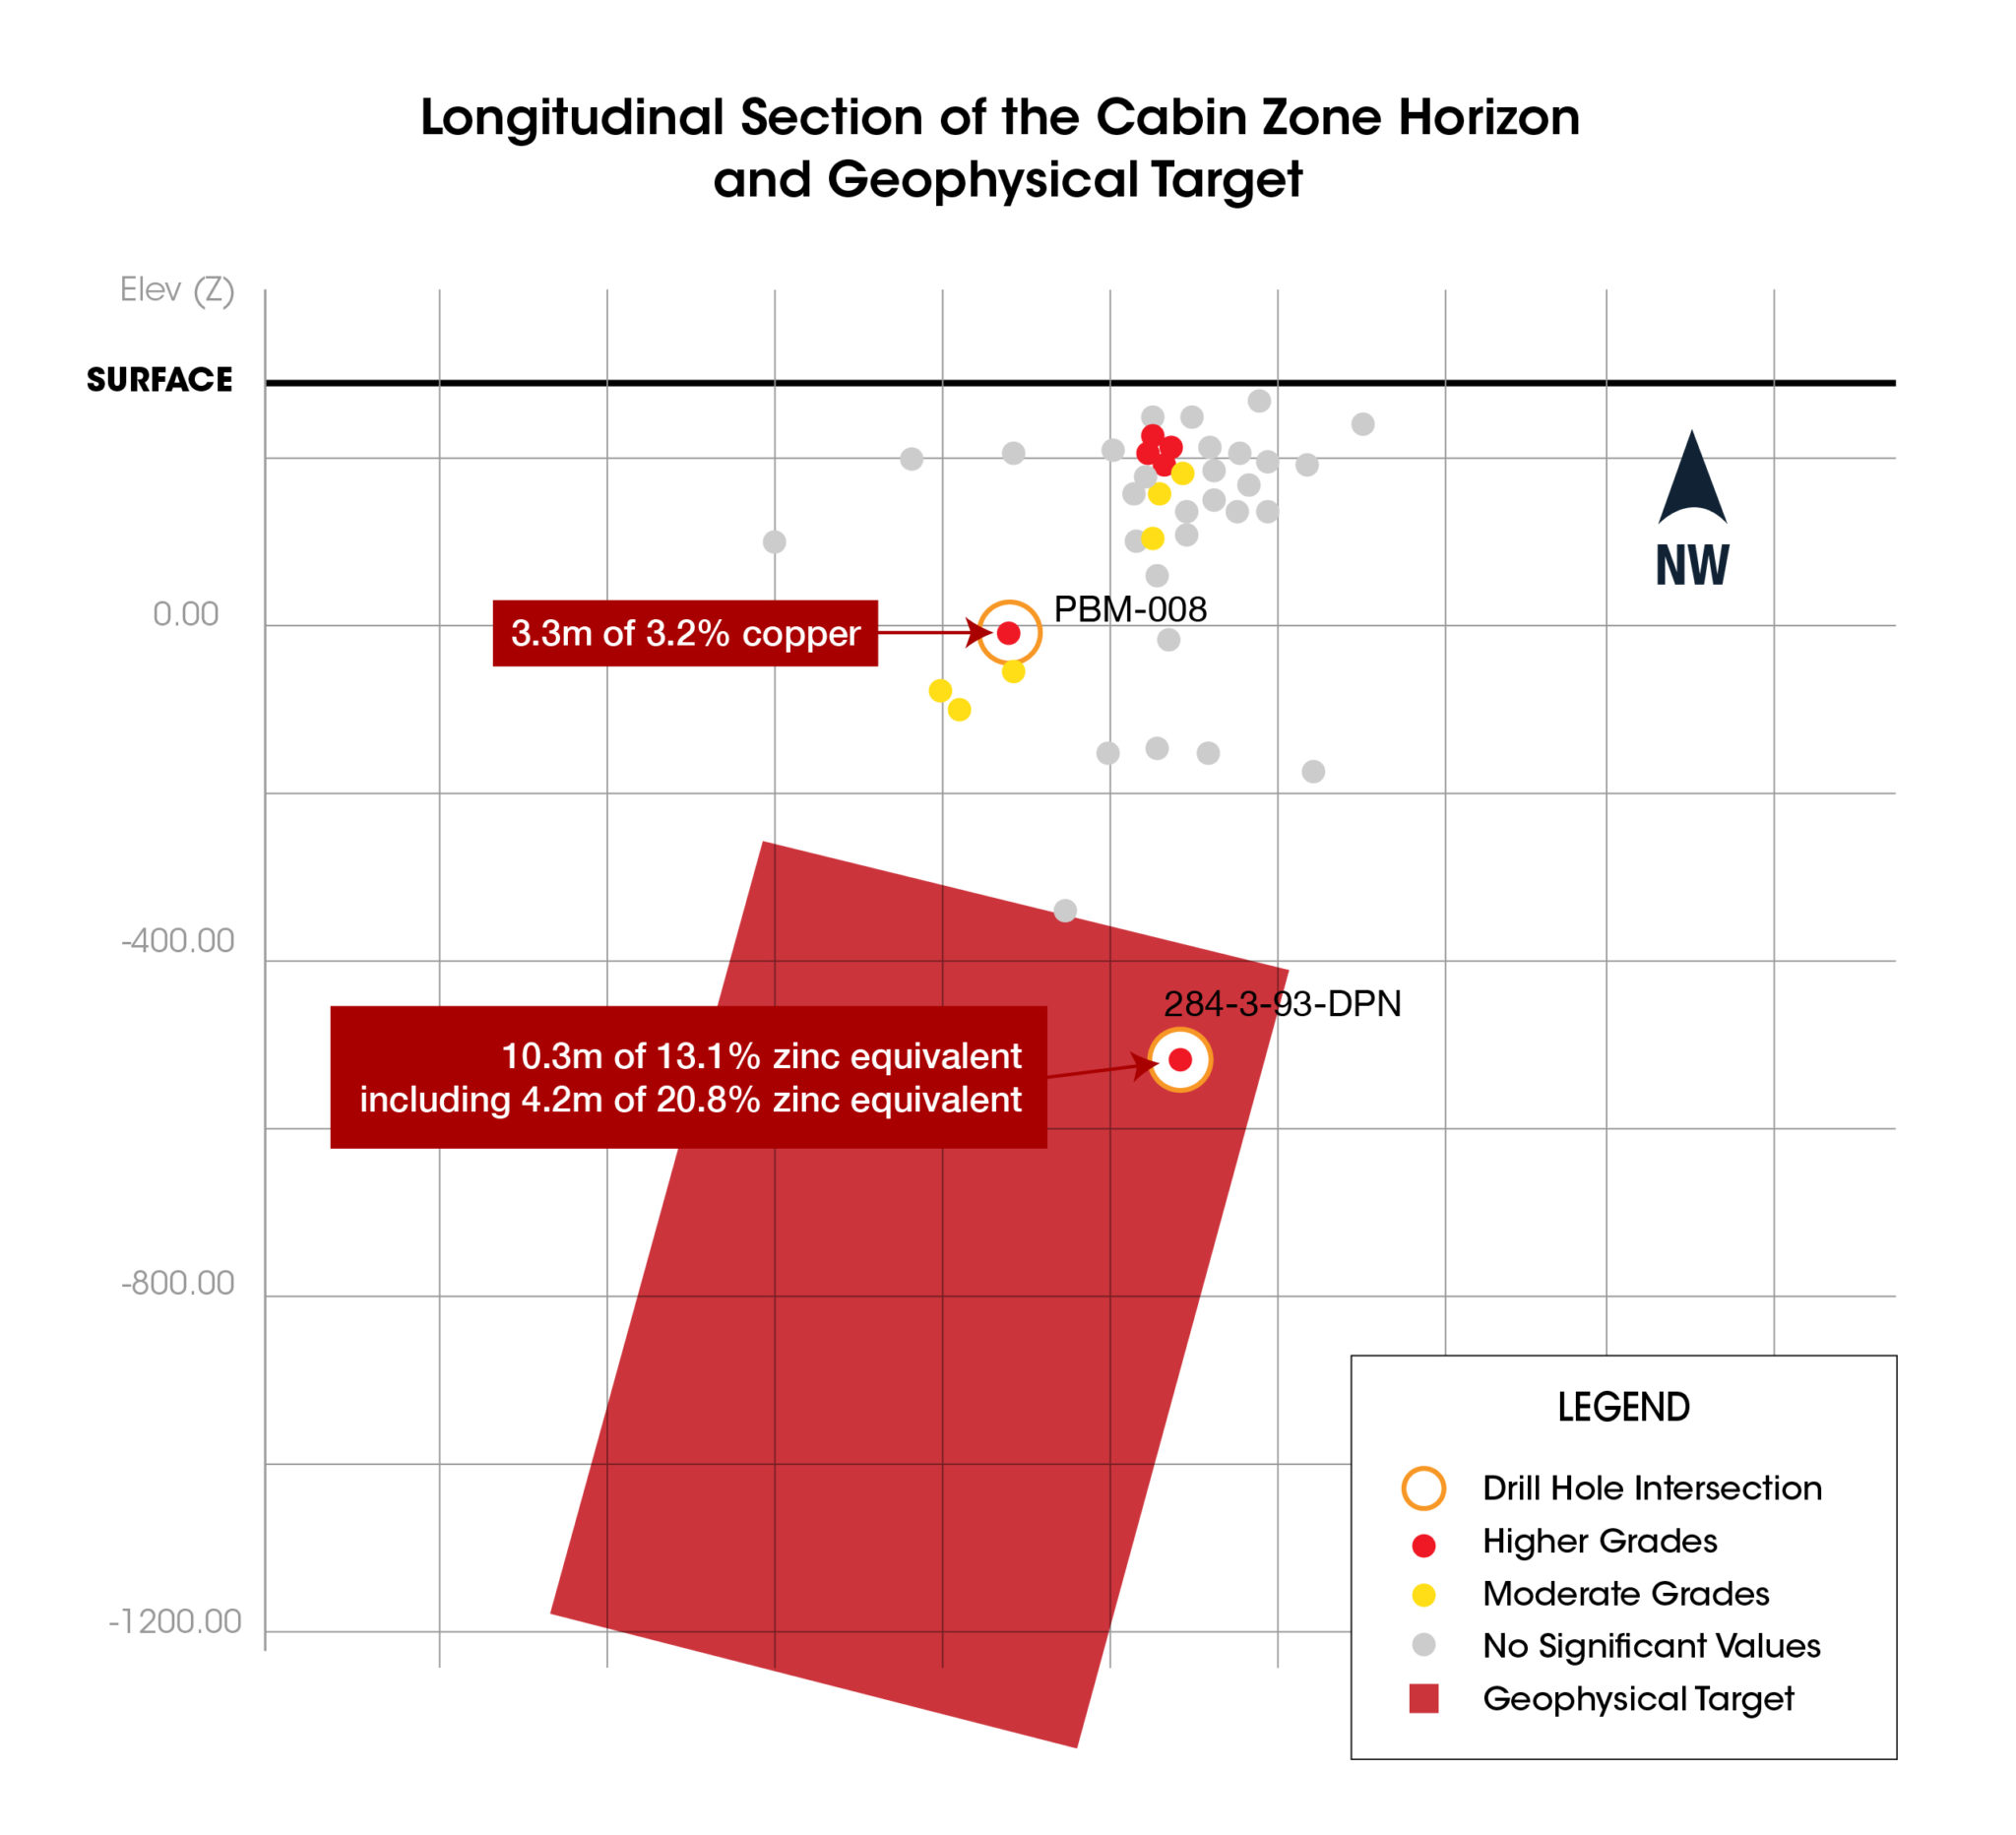 longitudinal-section-of-the-cabin-zone-horizon-and-geophysical-target-01-01